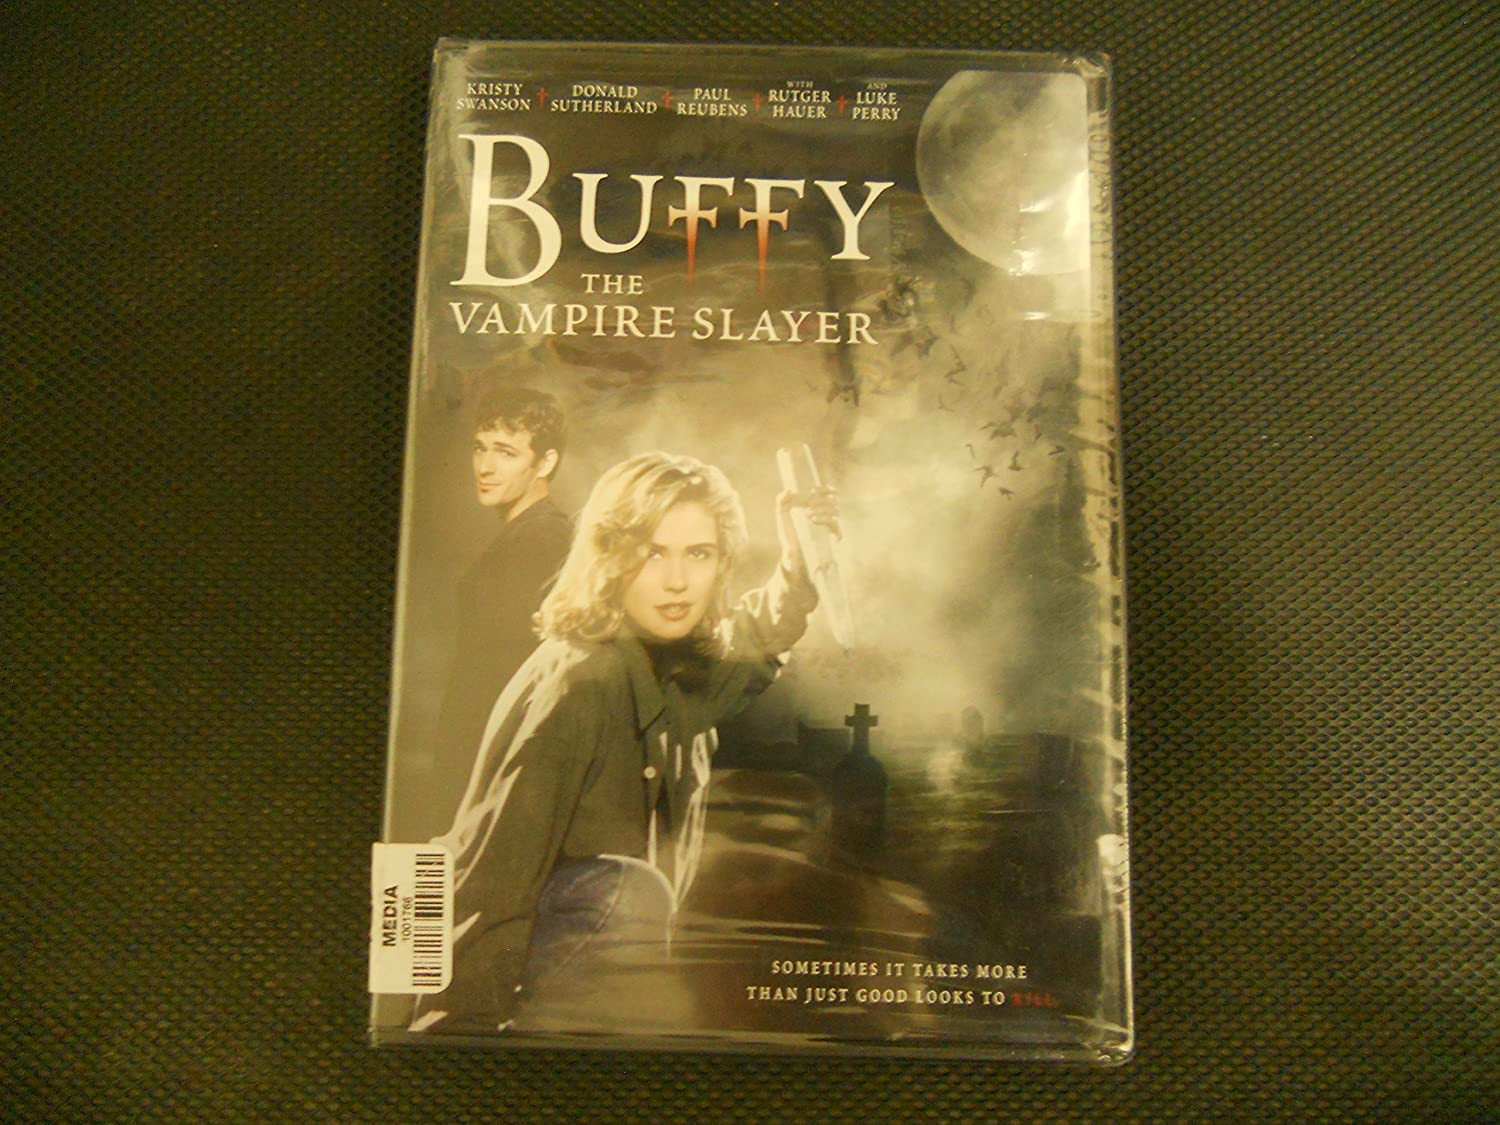 Buffy The Vampire Slayer - The Original Movie